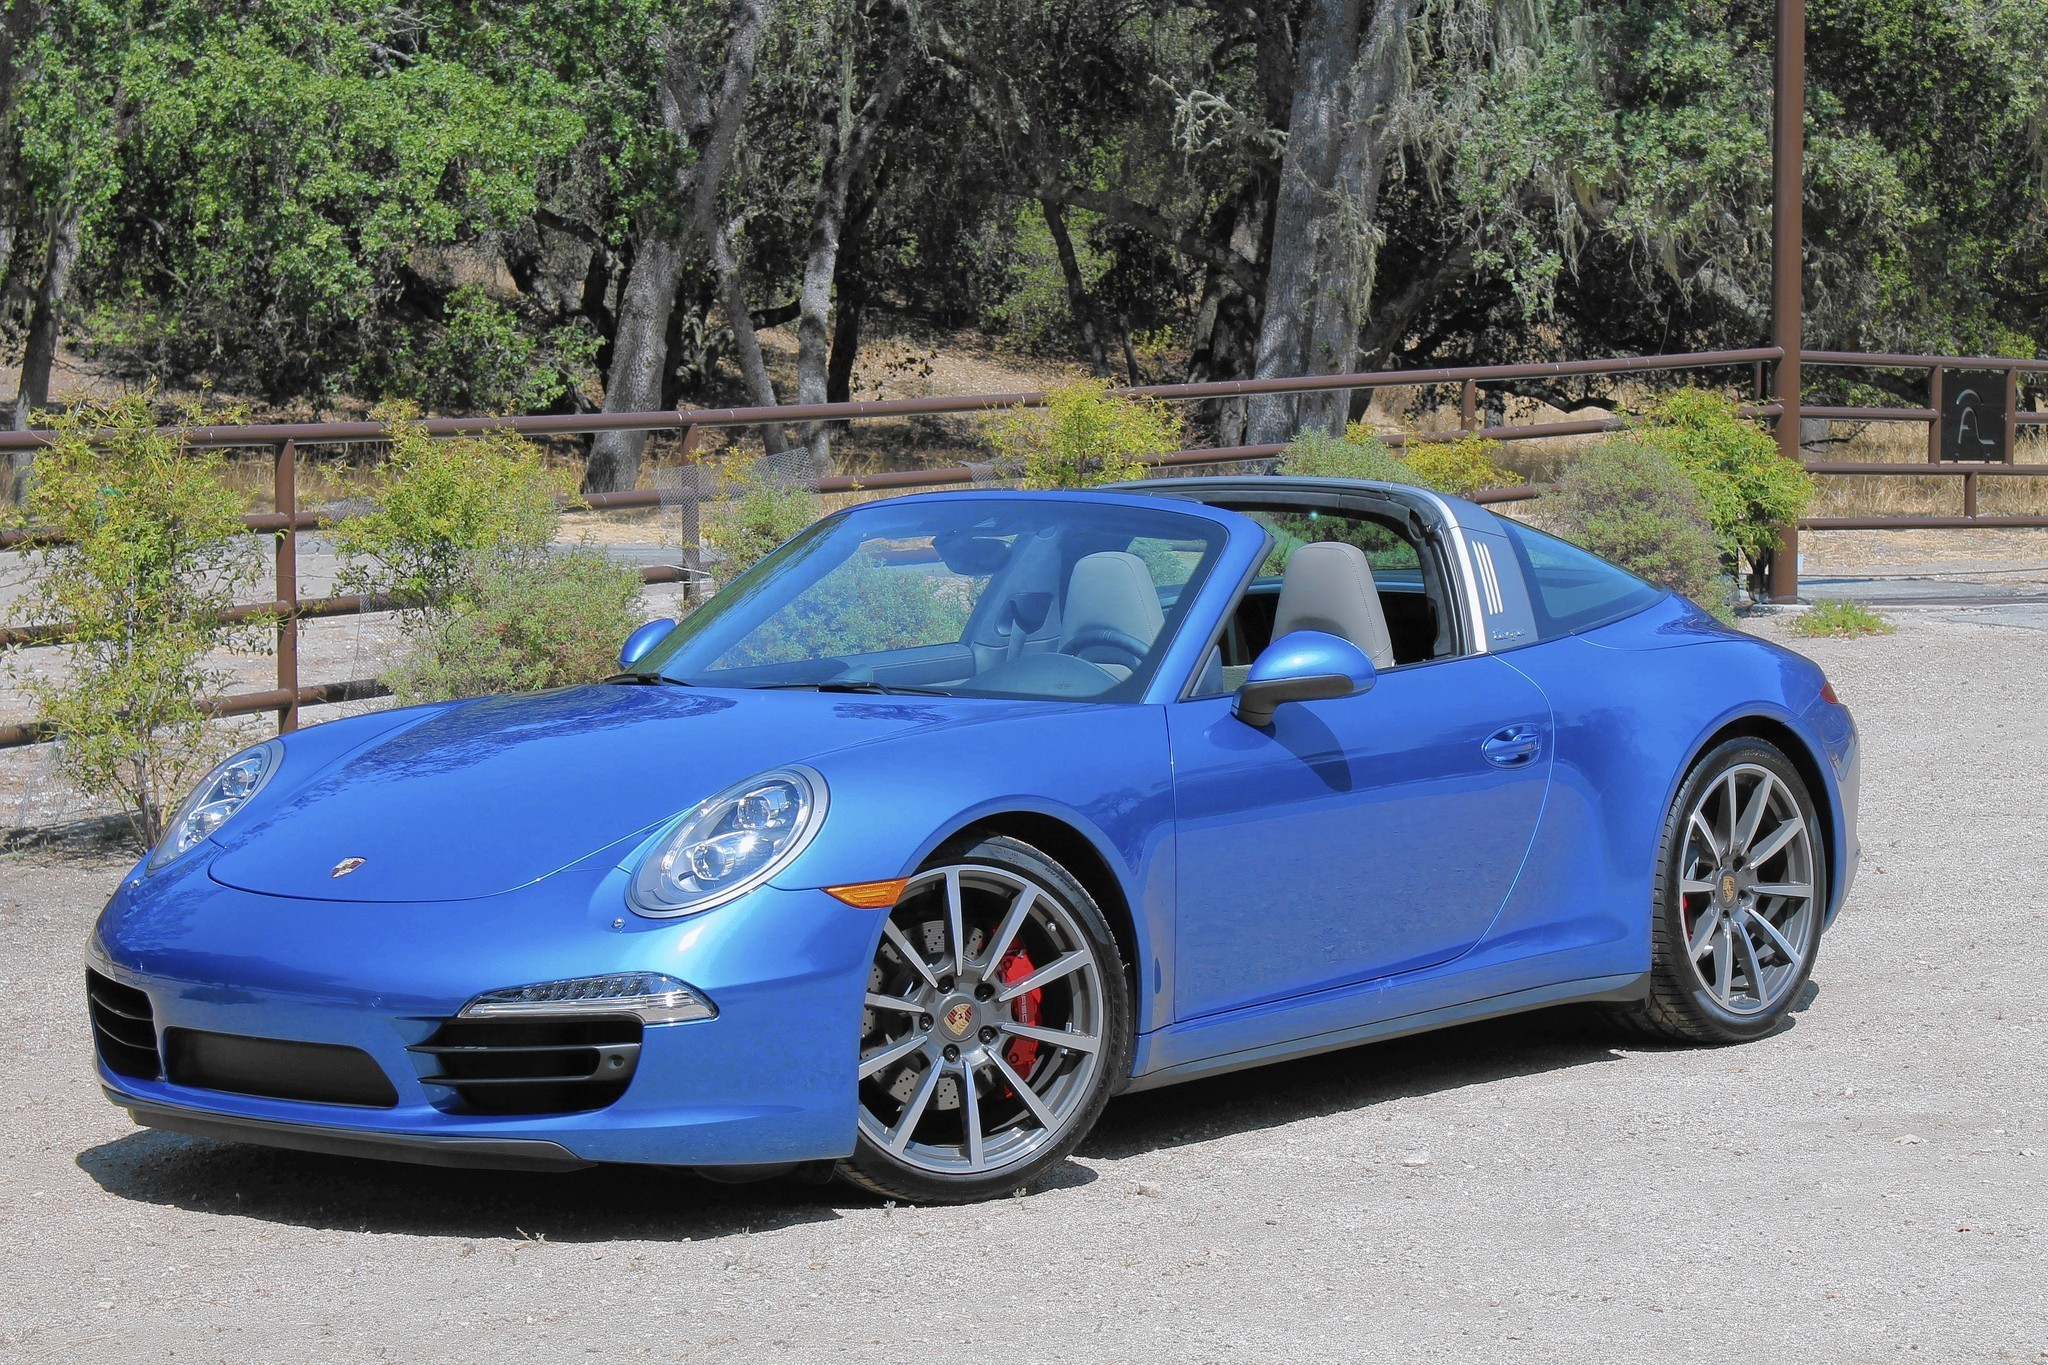 Luxury Review Removable Roof On Porsche 911 Targa 4S Offers Californiacool Factor